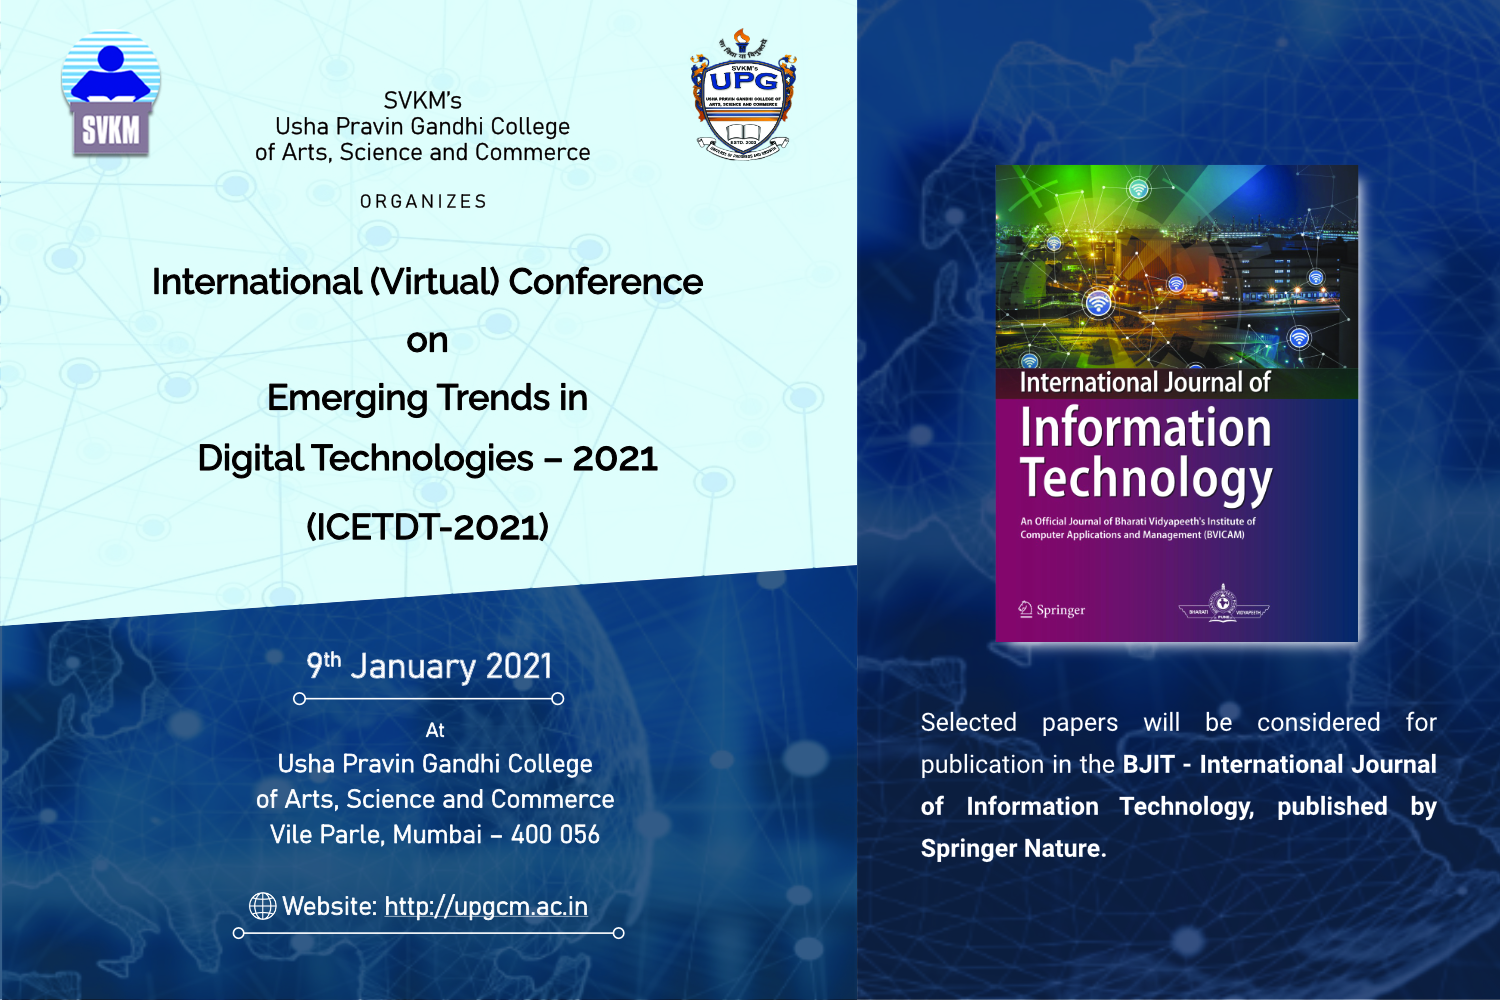 International Conference (ICETDT-2021)